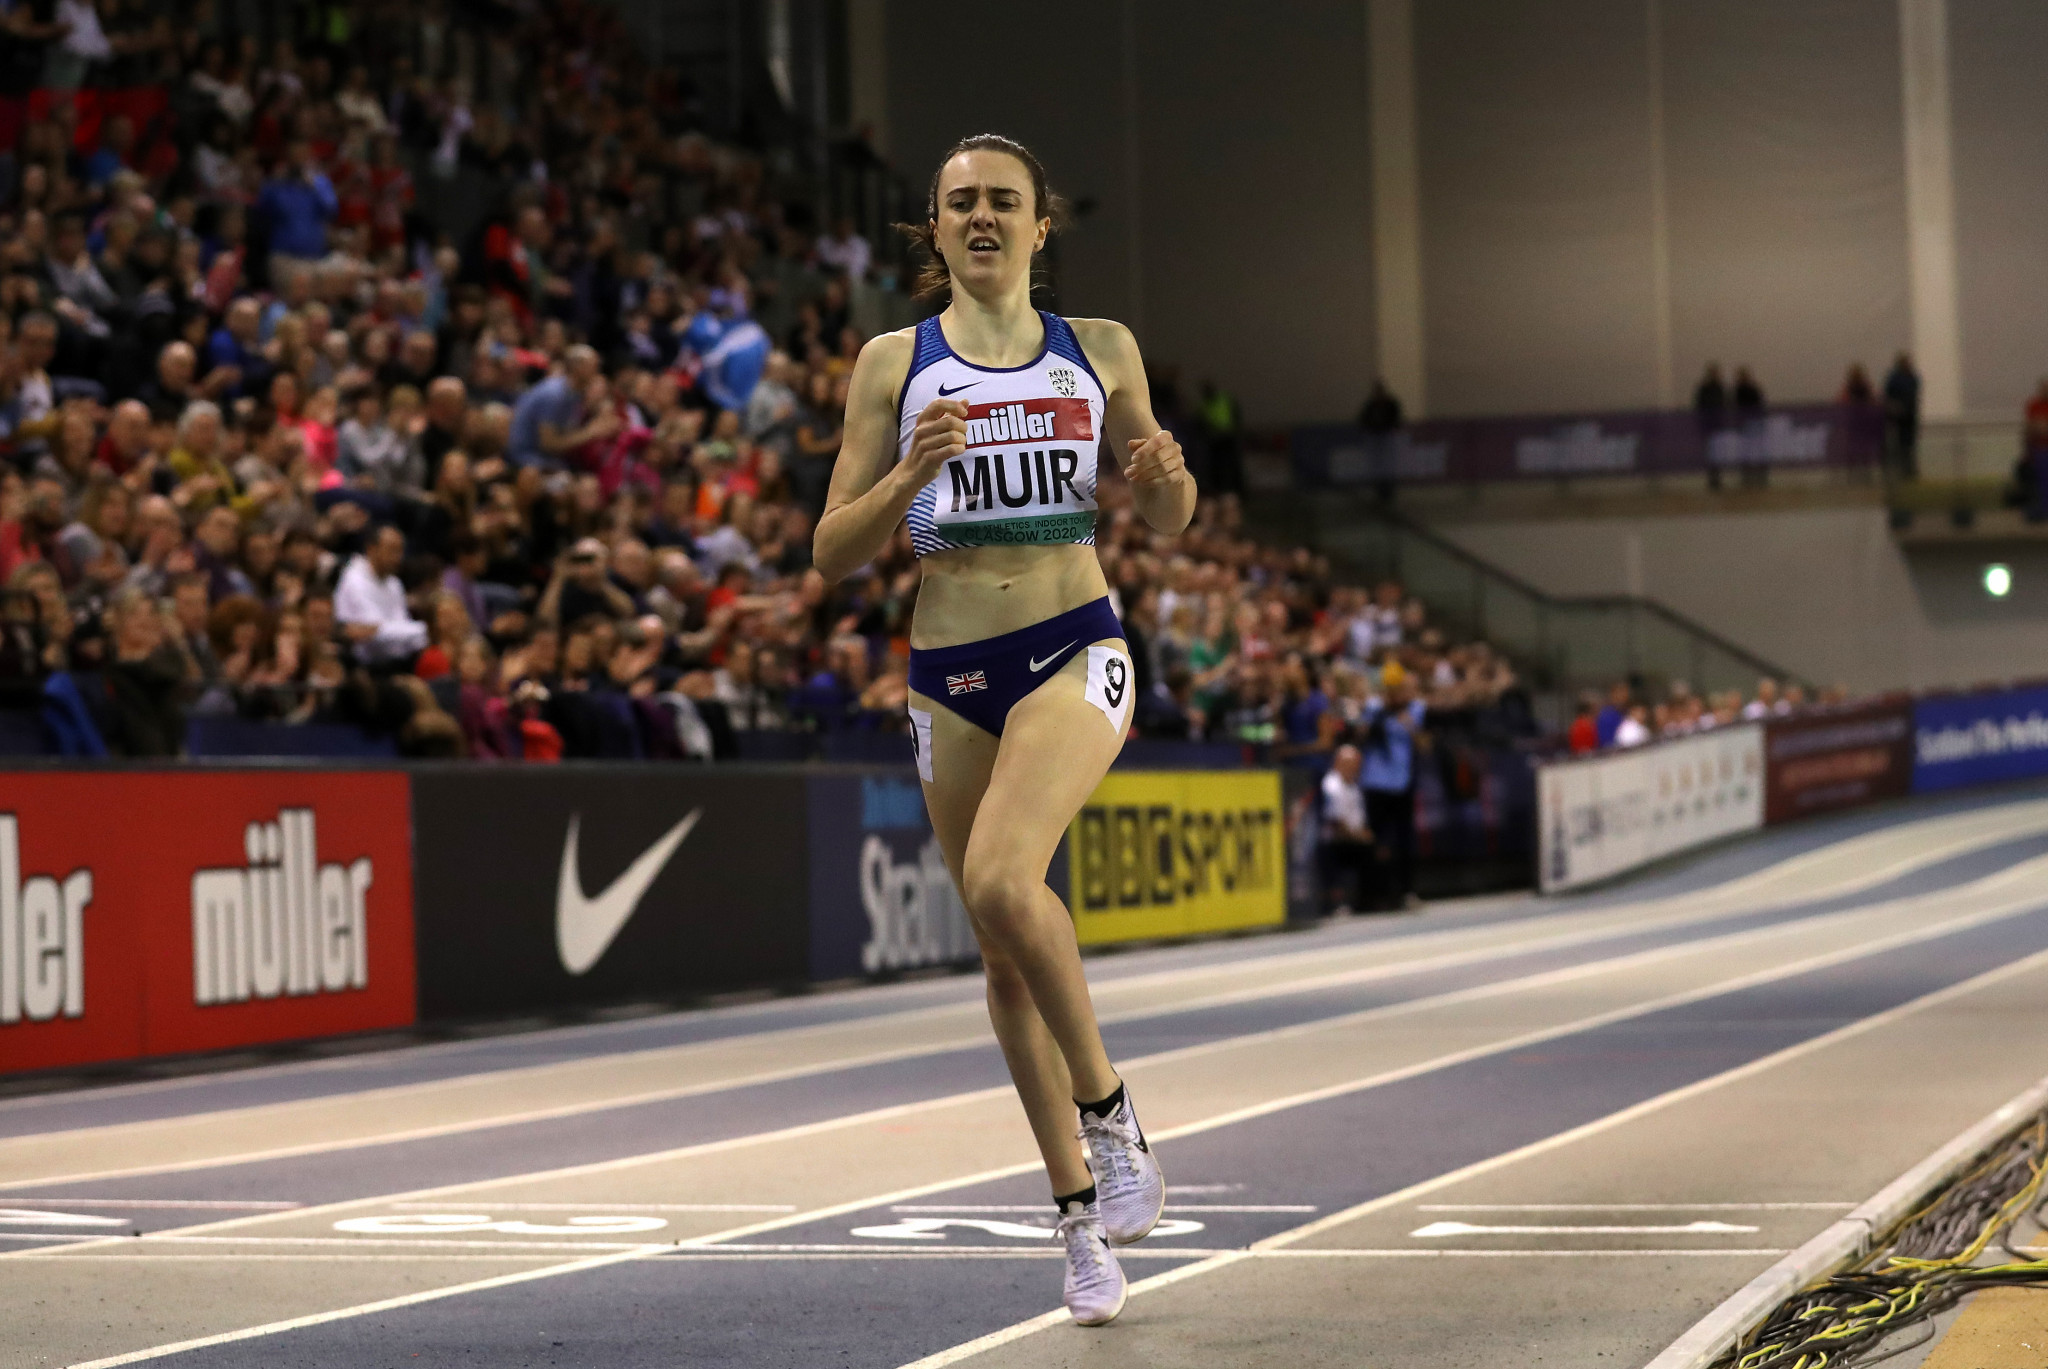 Müller and British Athletics renew delicious sponsorship partnership ahead of Tokyo 2020